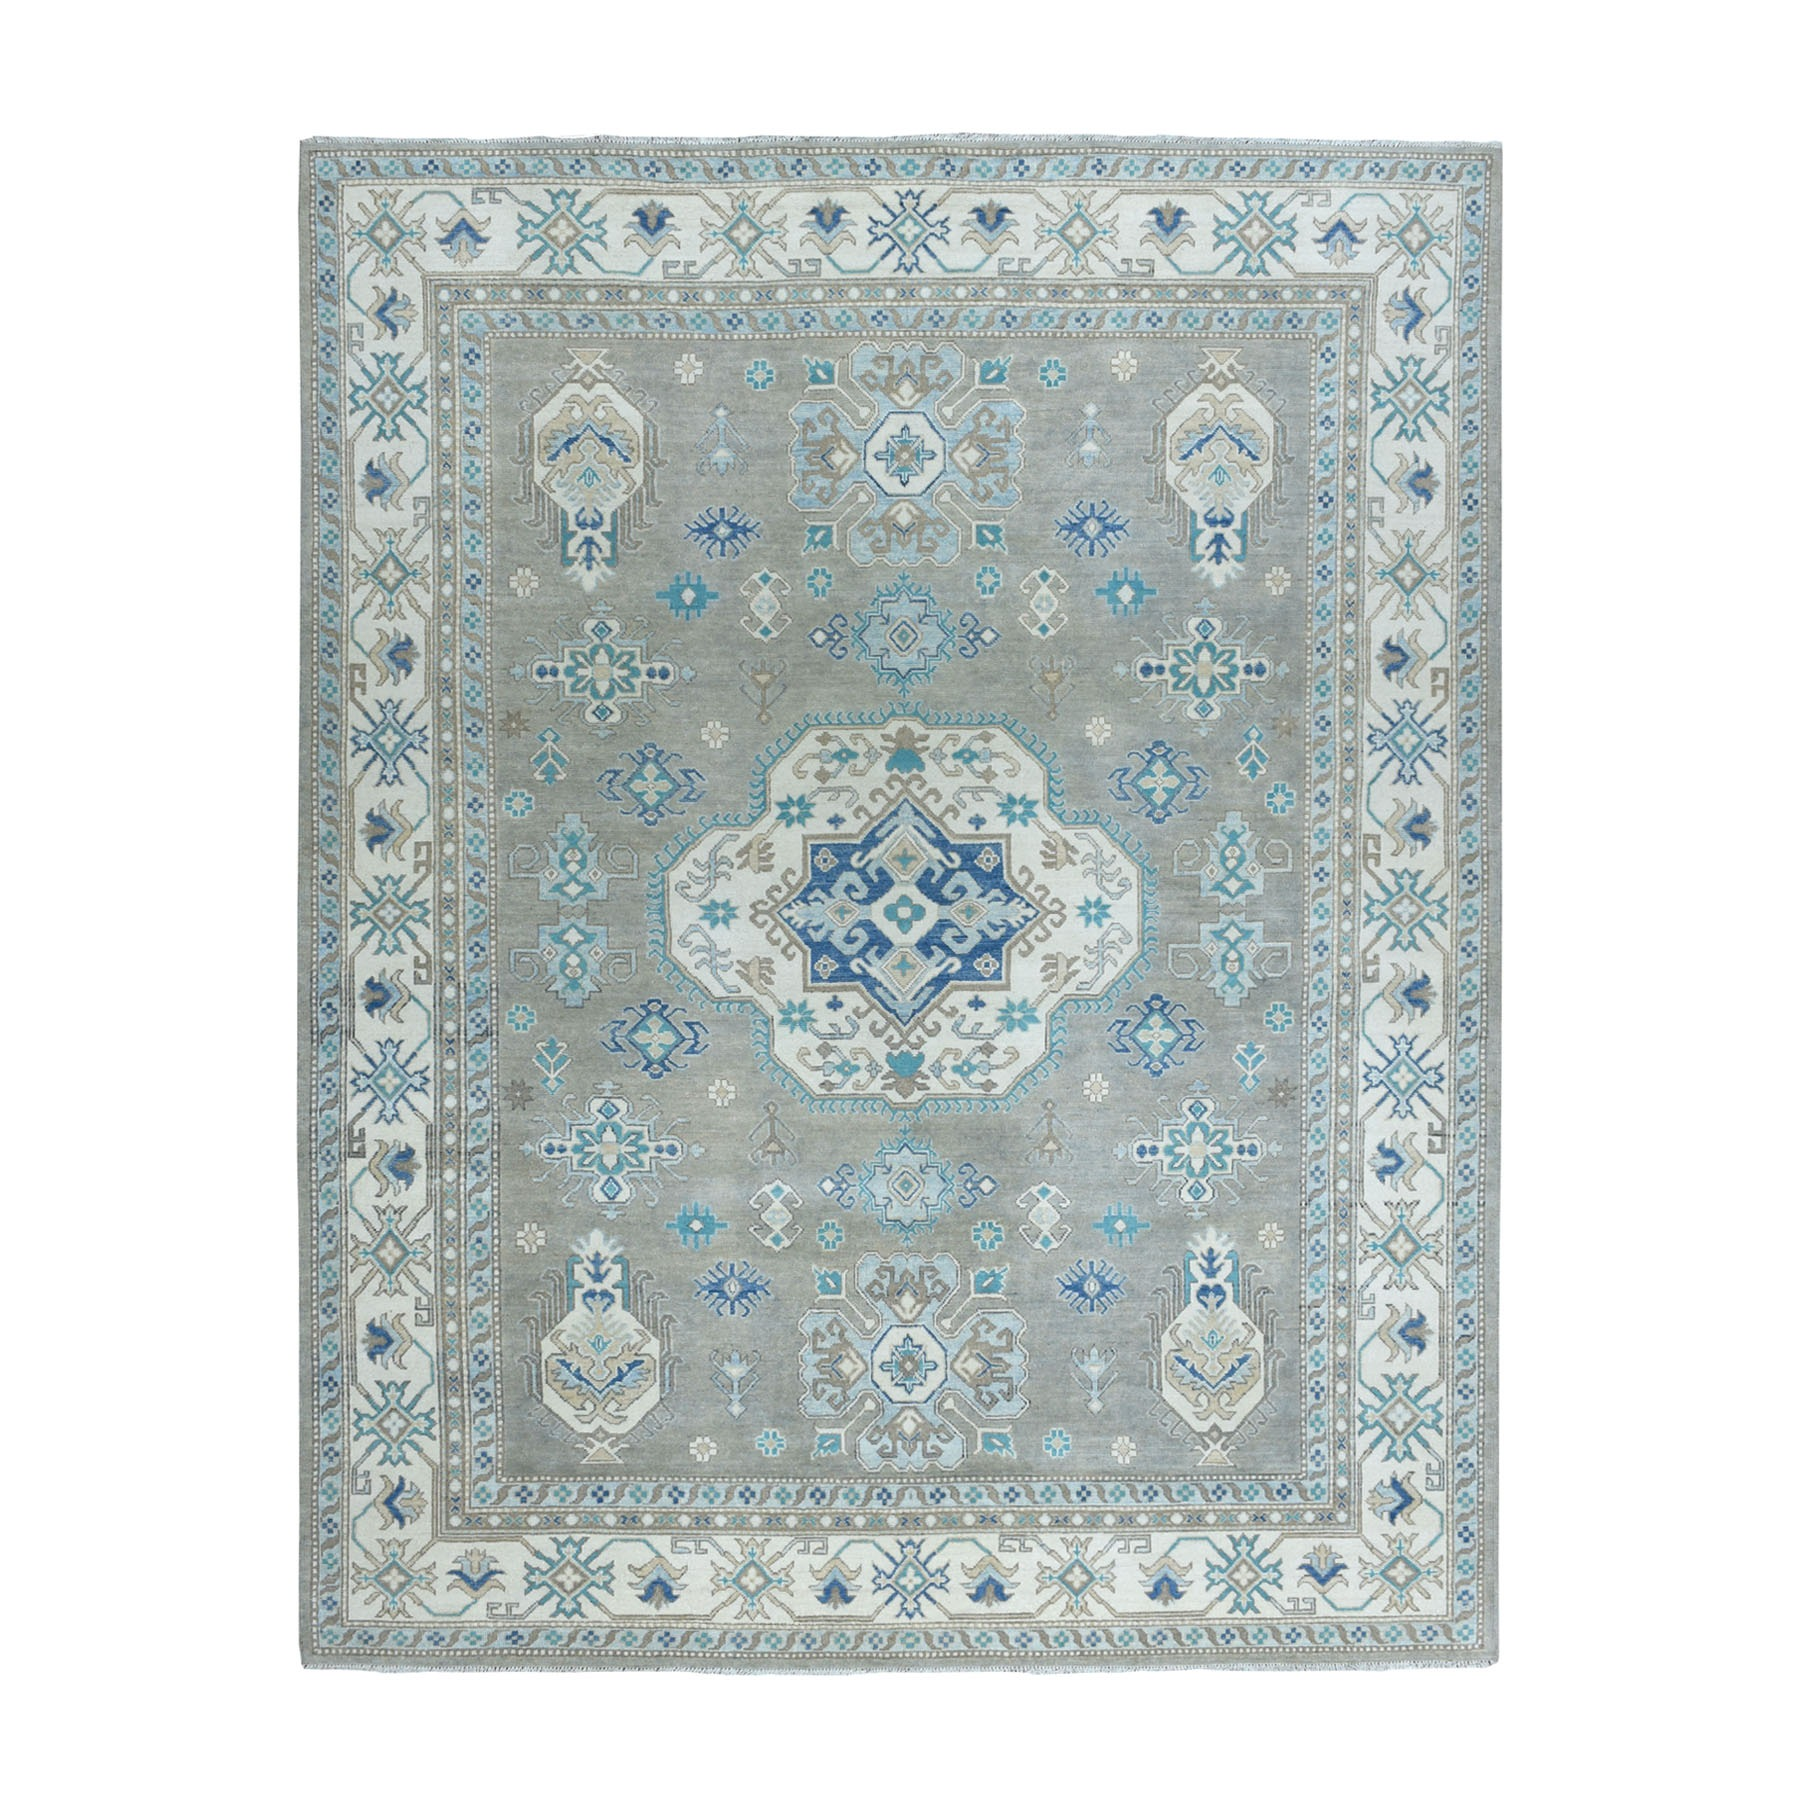 "8'X9'10"" Gray Vintage Look Kazak Geometric Design Hand-Knotted Oriental Rug moaeaa9b"